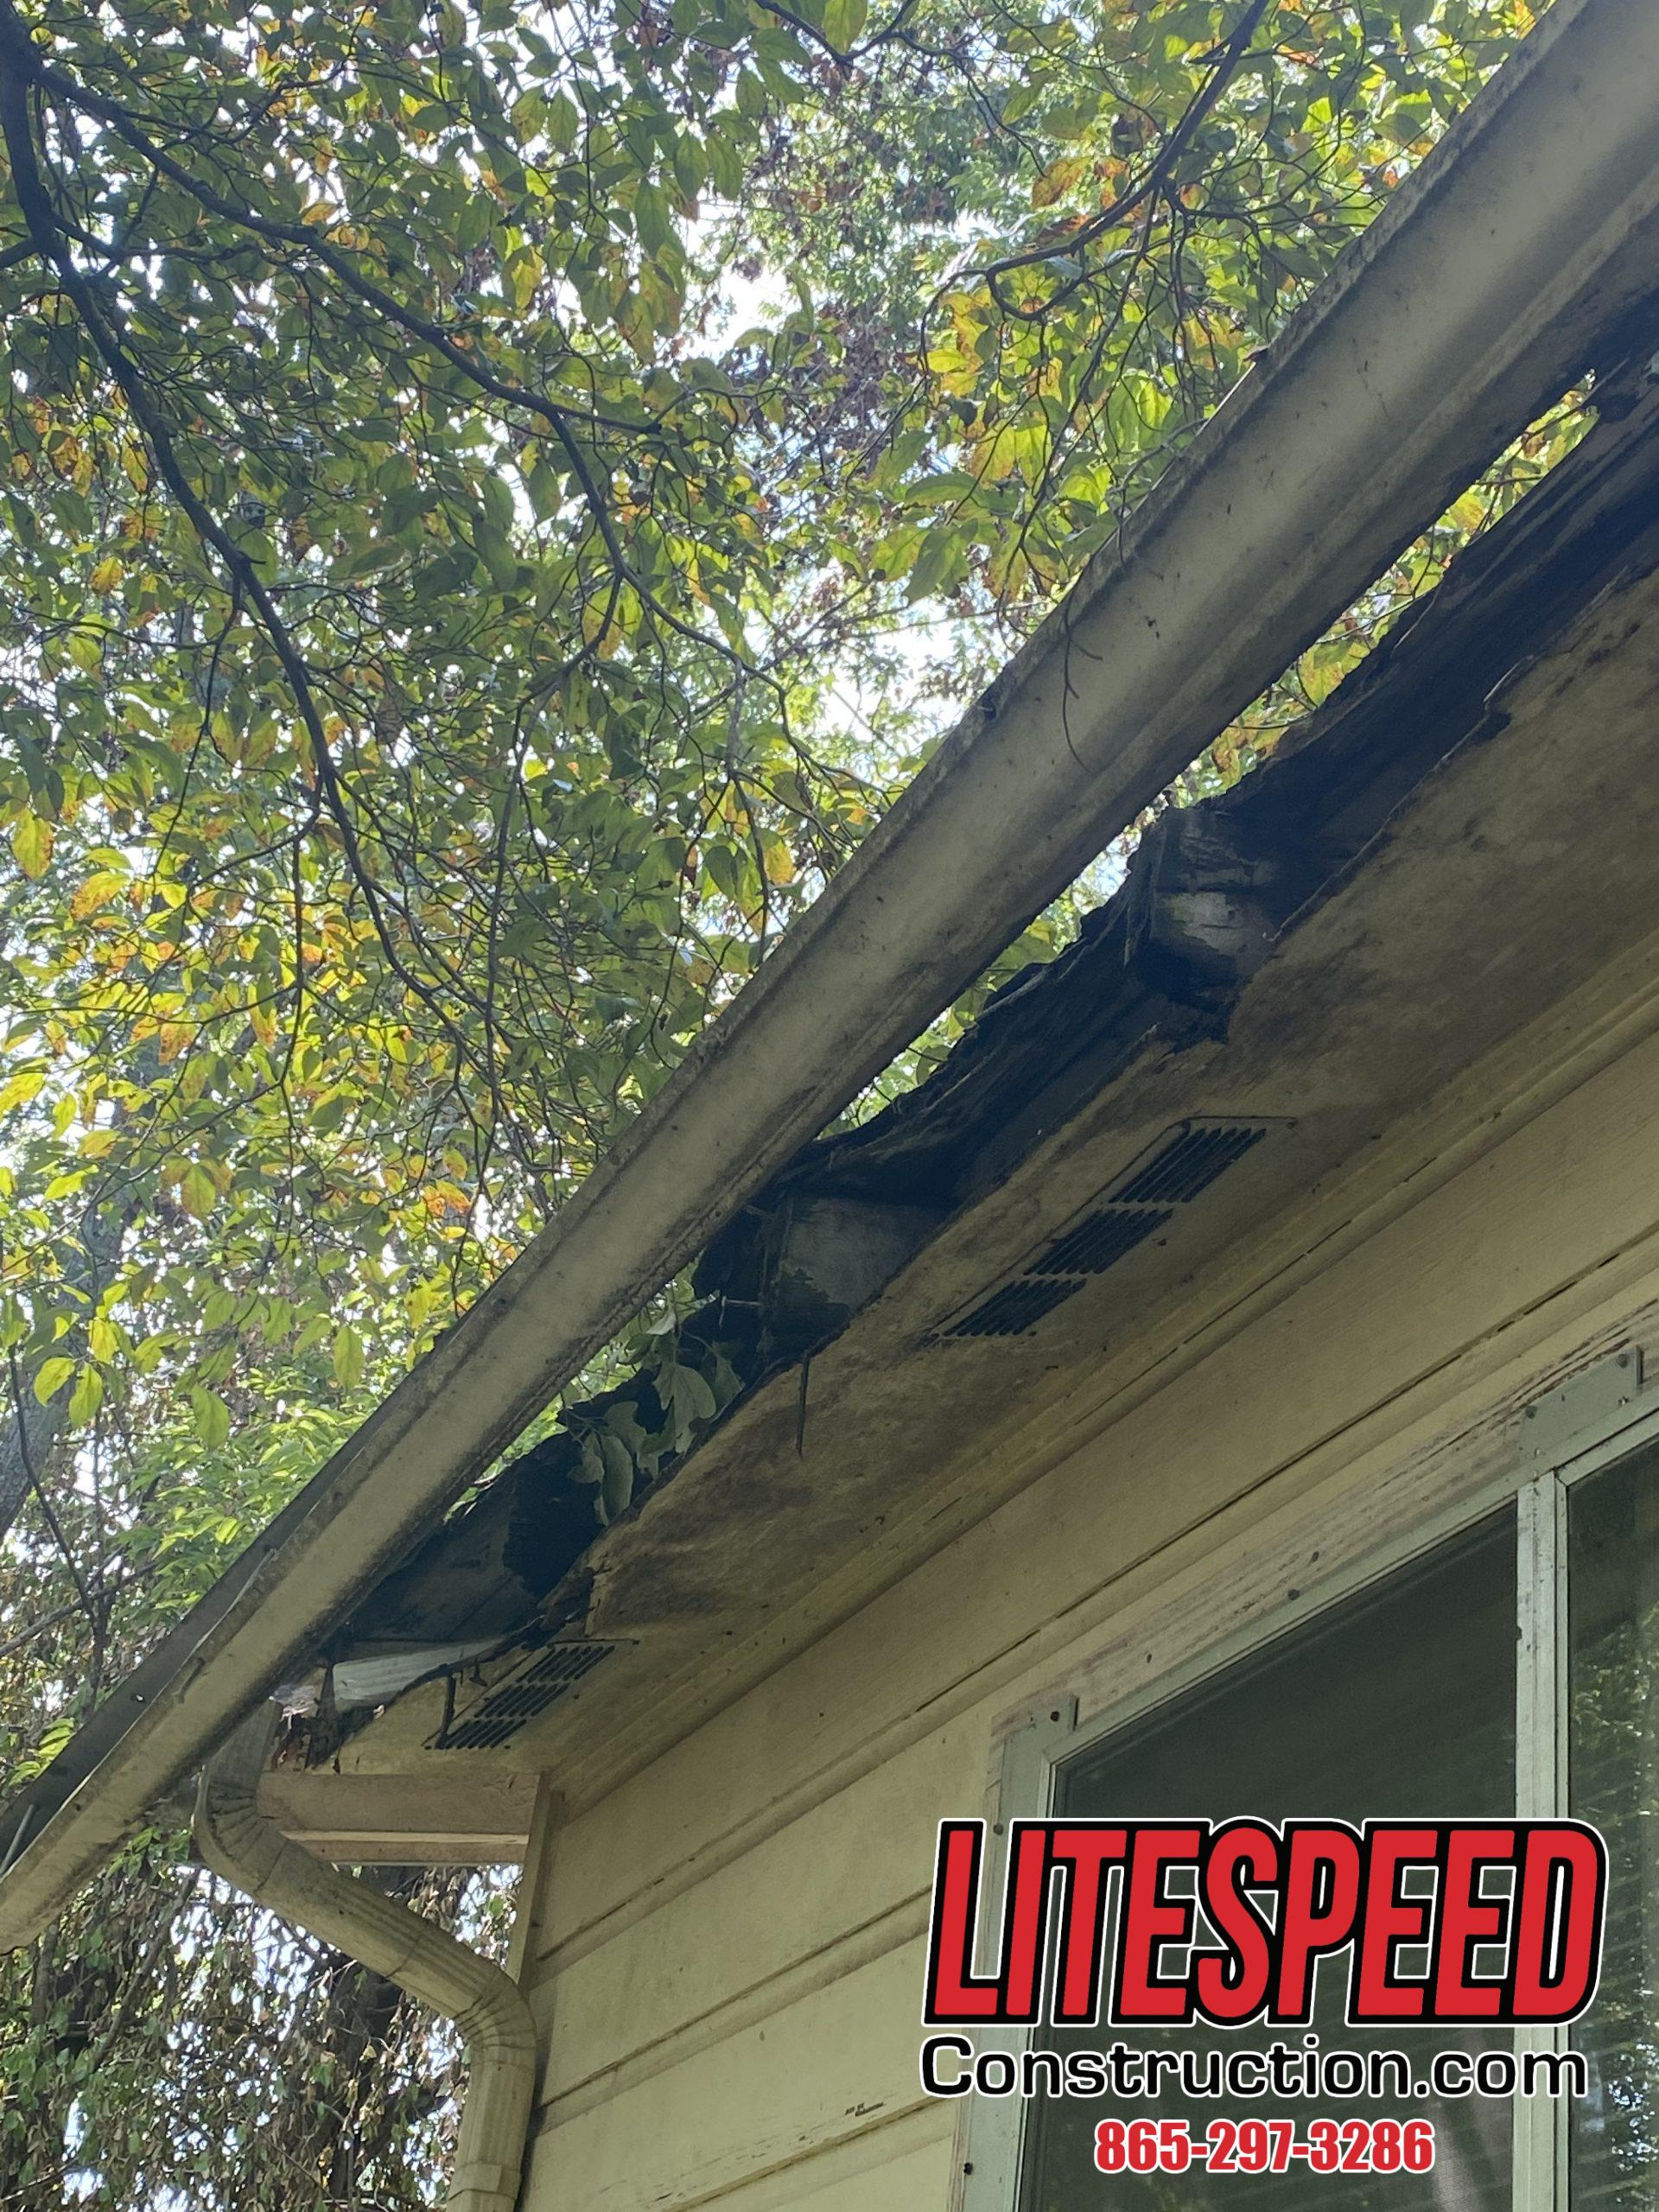 This is a picture of a gutter that is falling off the house